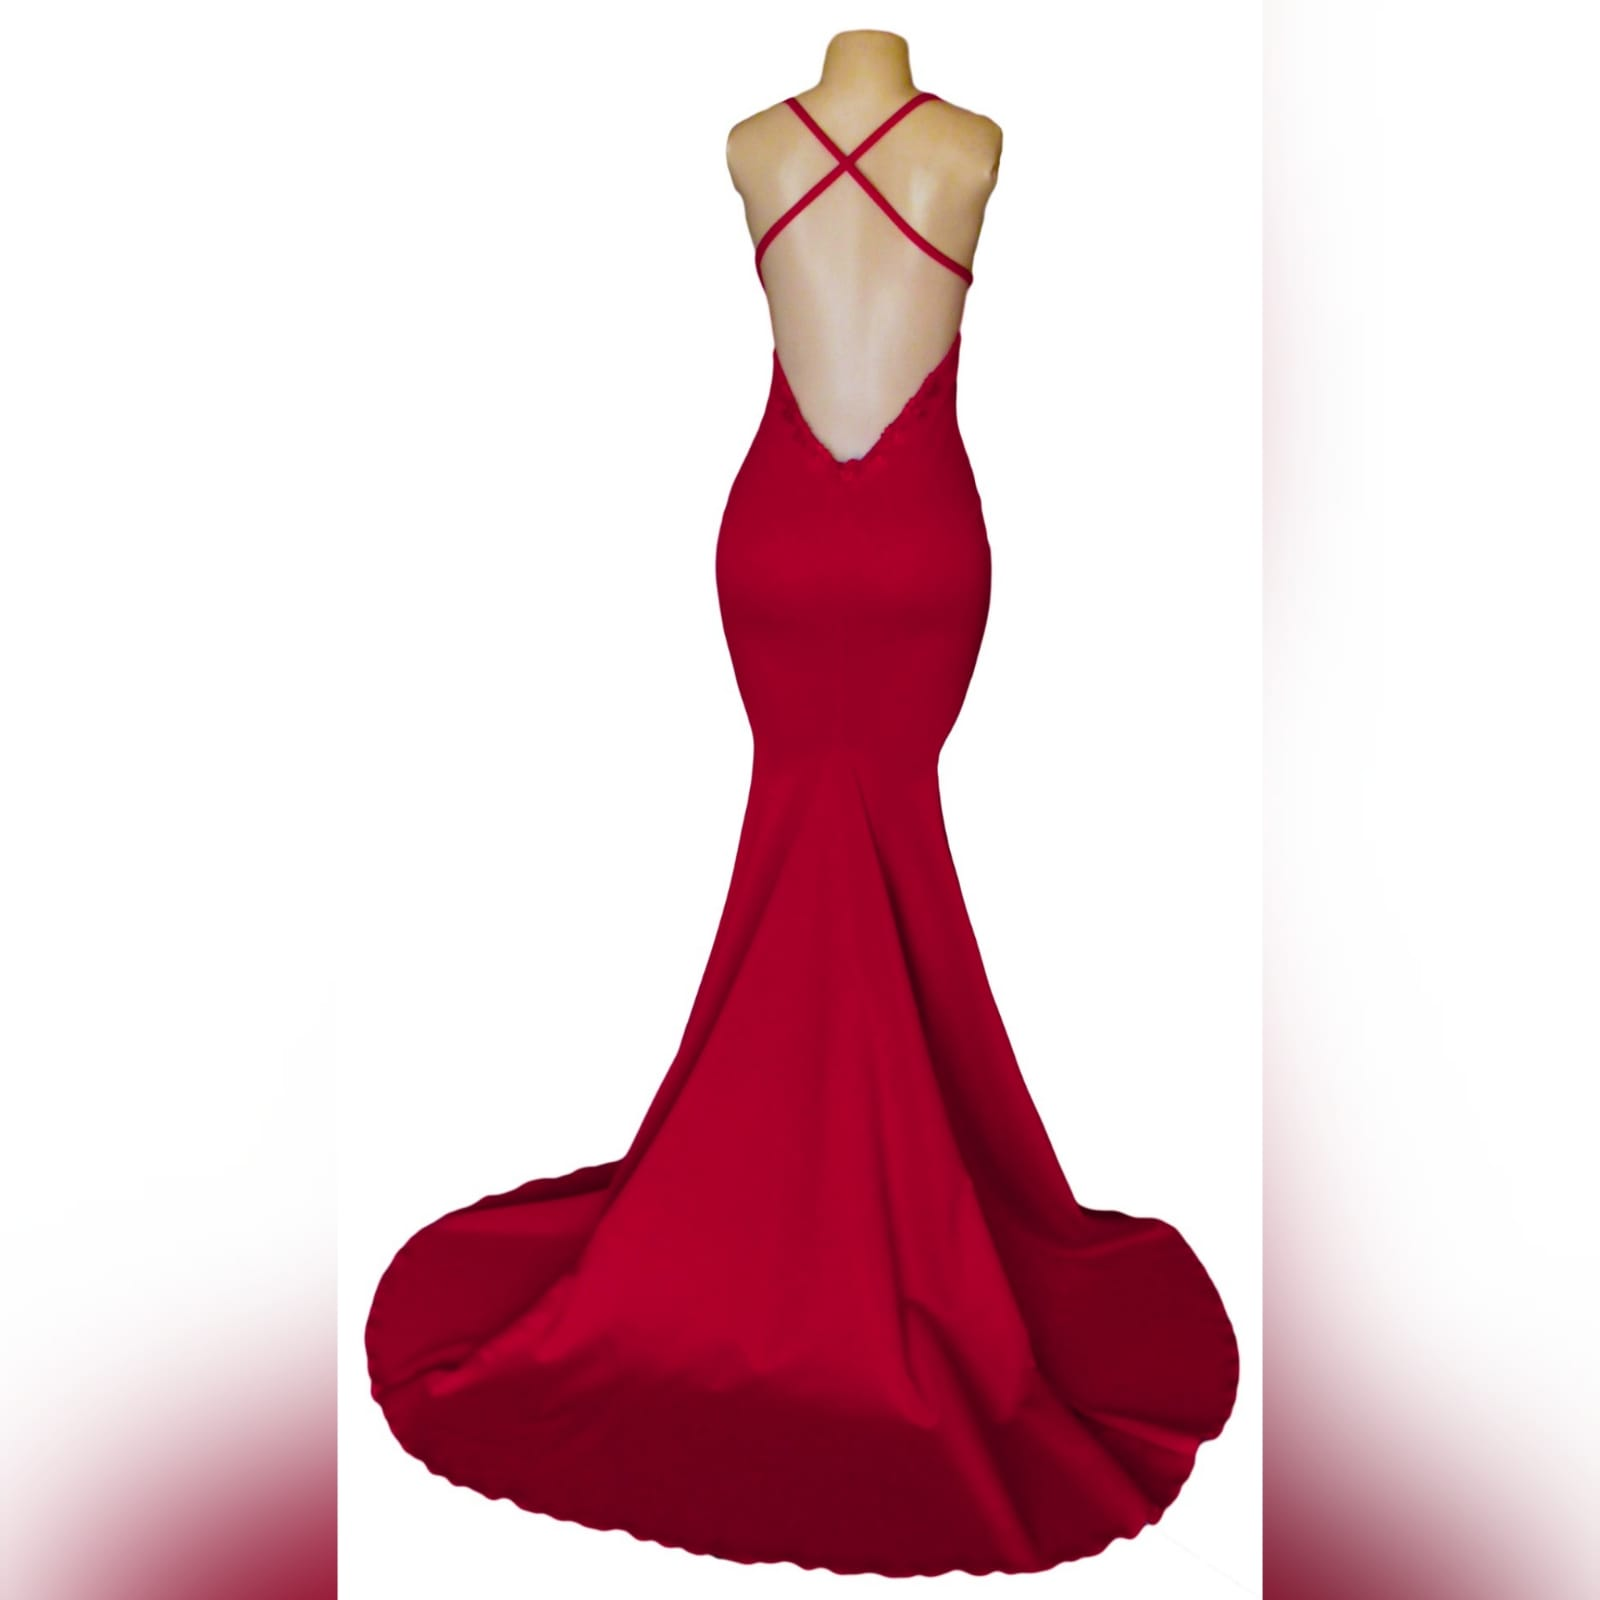 Red soft mermaid prom dress with a v neckline 6 red soft mermaid prom dress with a v neckline, a low open back and thin crossed shoulder straps, with a train.